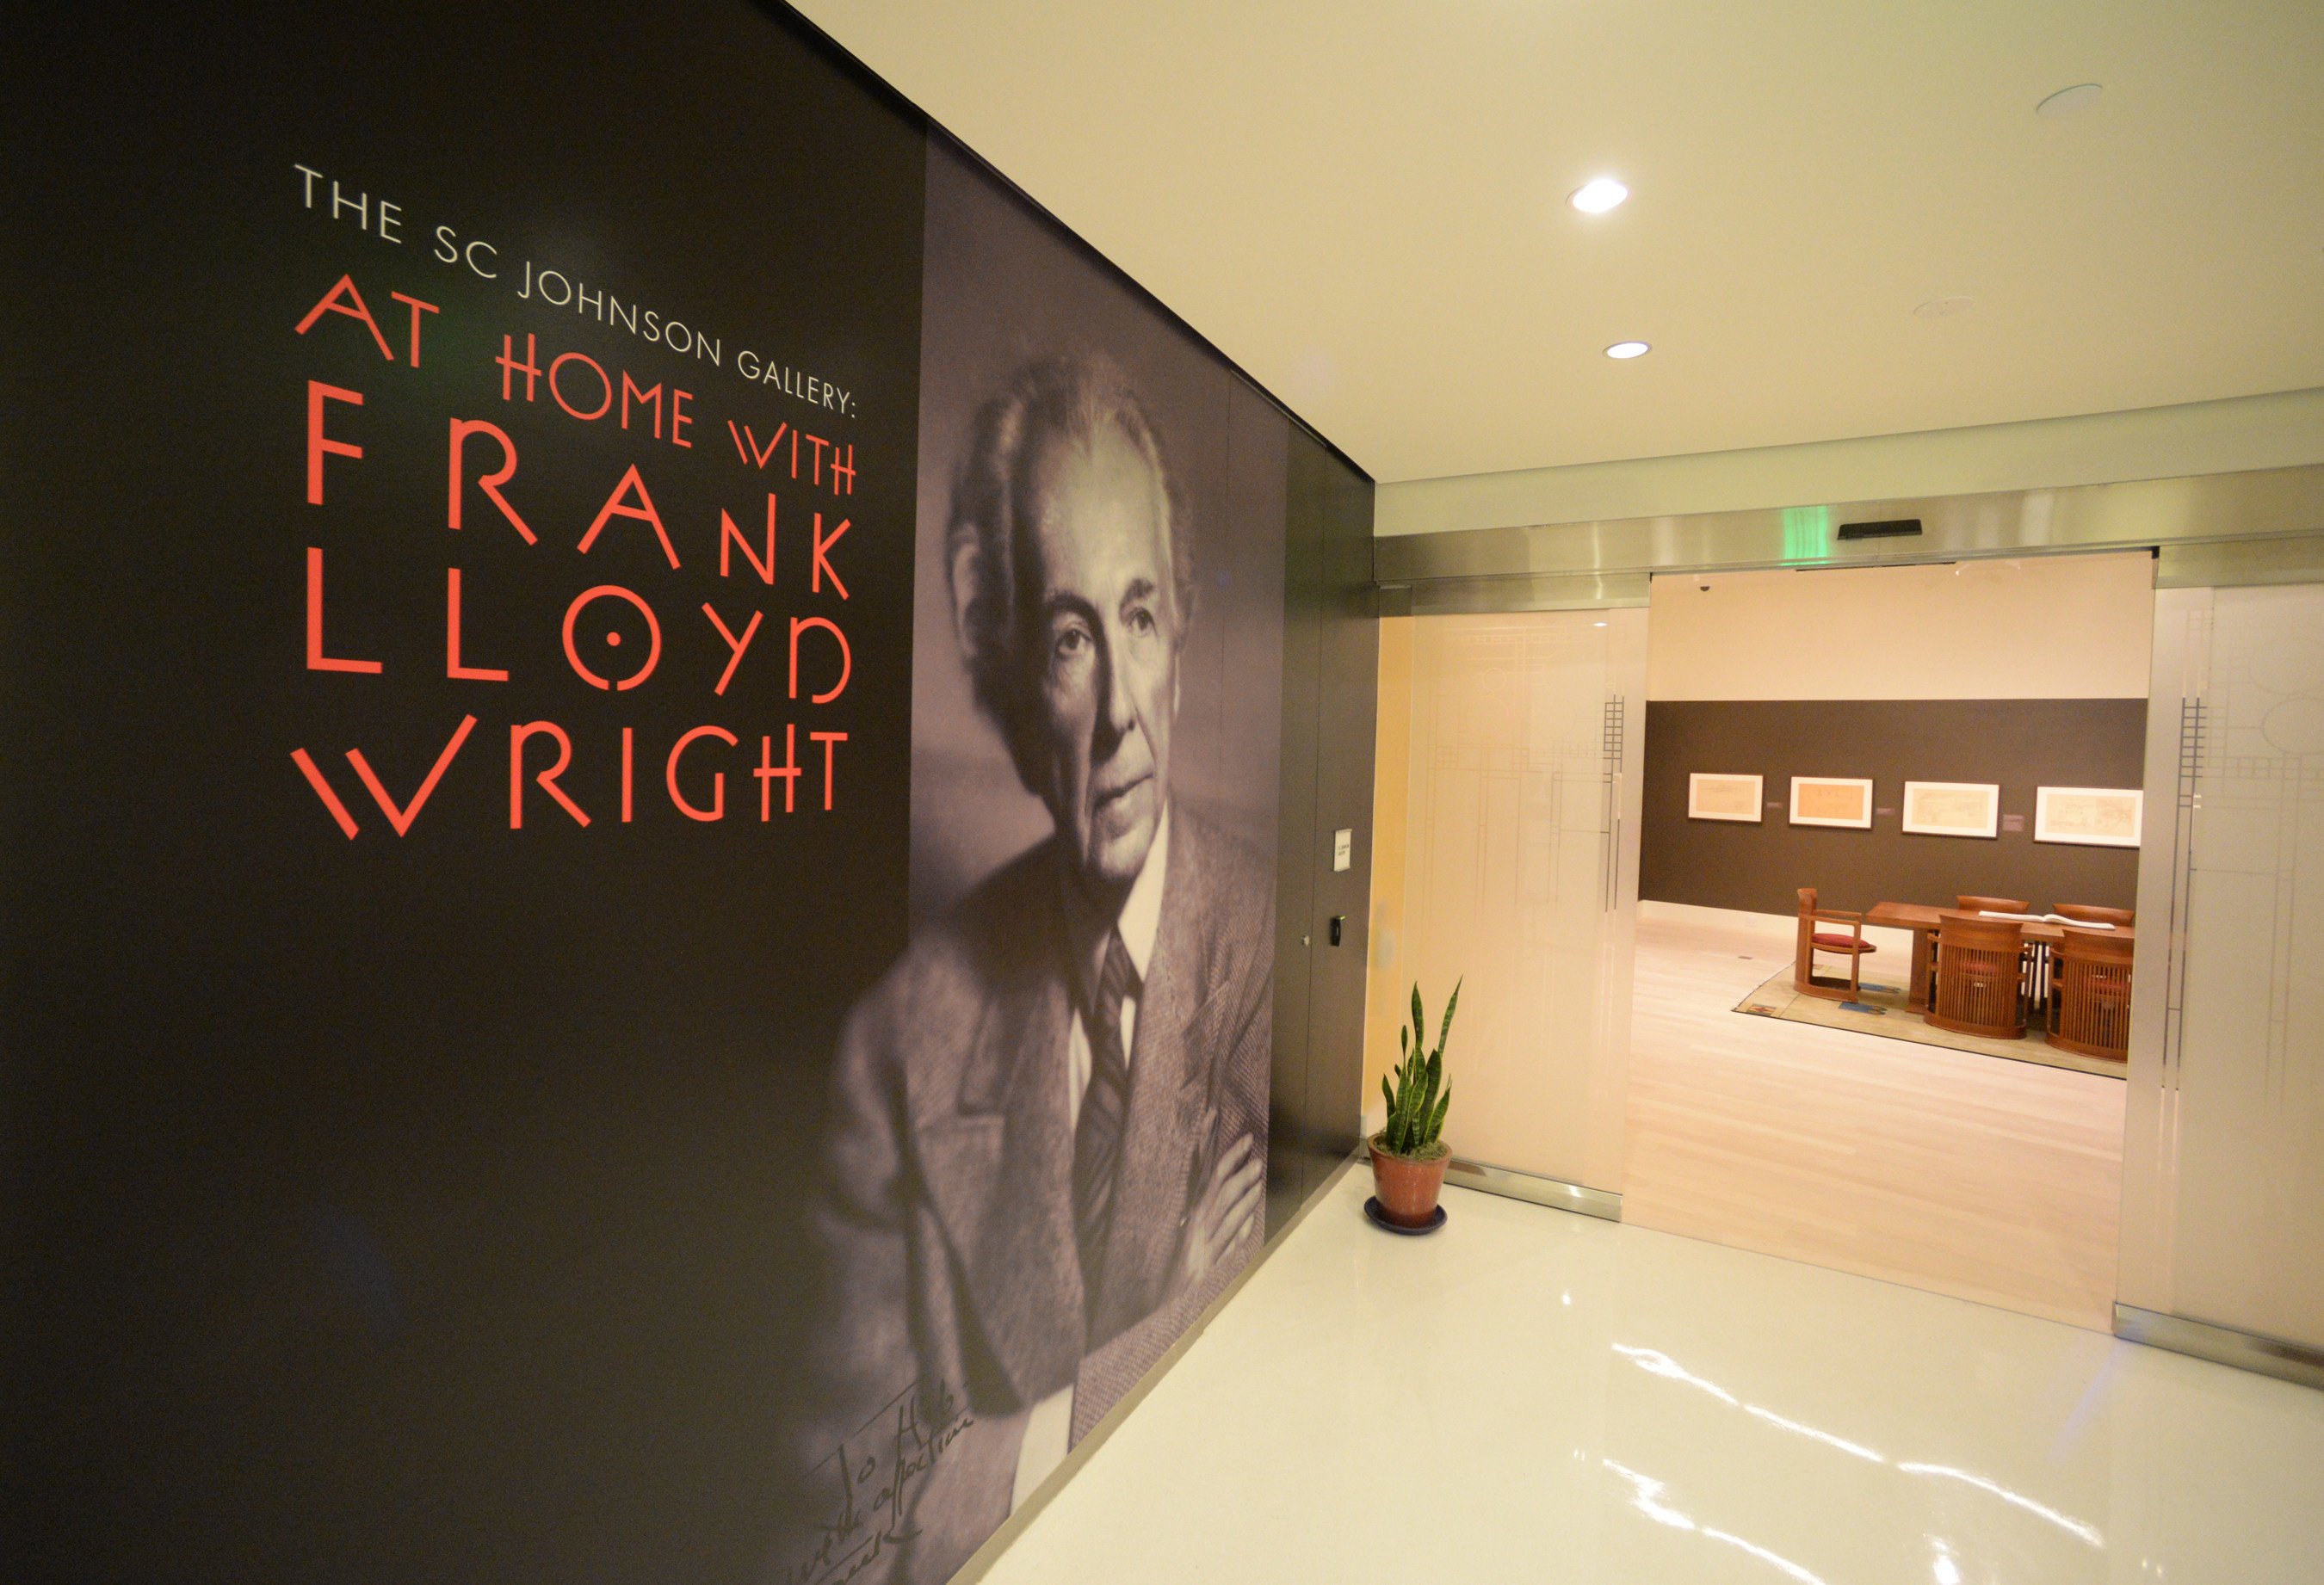 SC Johnson unveils Frank Lloyd Wright's incredibly rare and world-renowned Wasmuth Portfolio to mark the start of its 2015 architecture tour season.